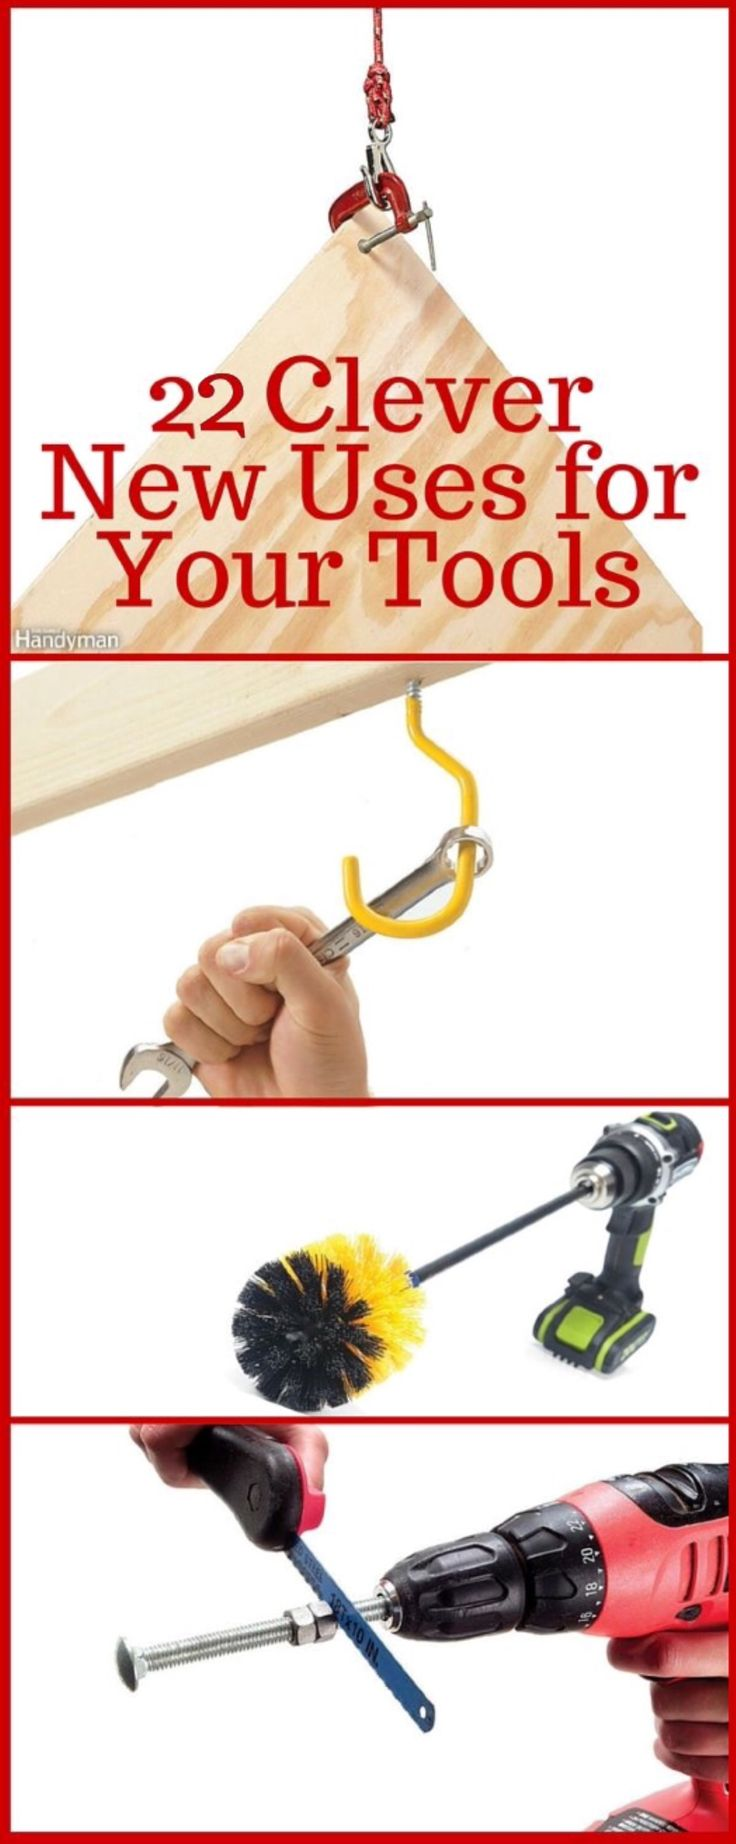 '22 Clever New Uses for Your Tools...!' (via The Family Handyman)